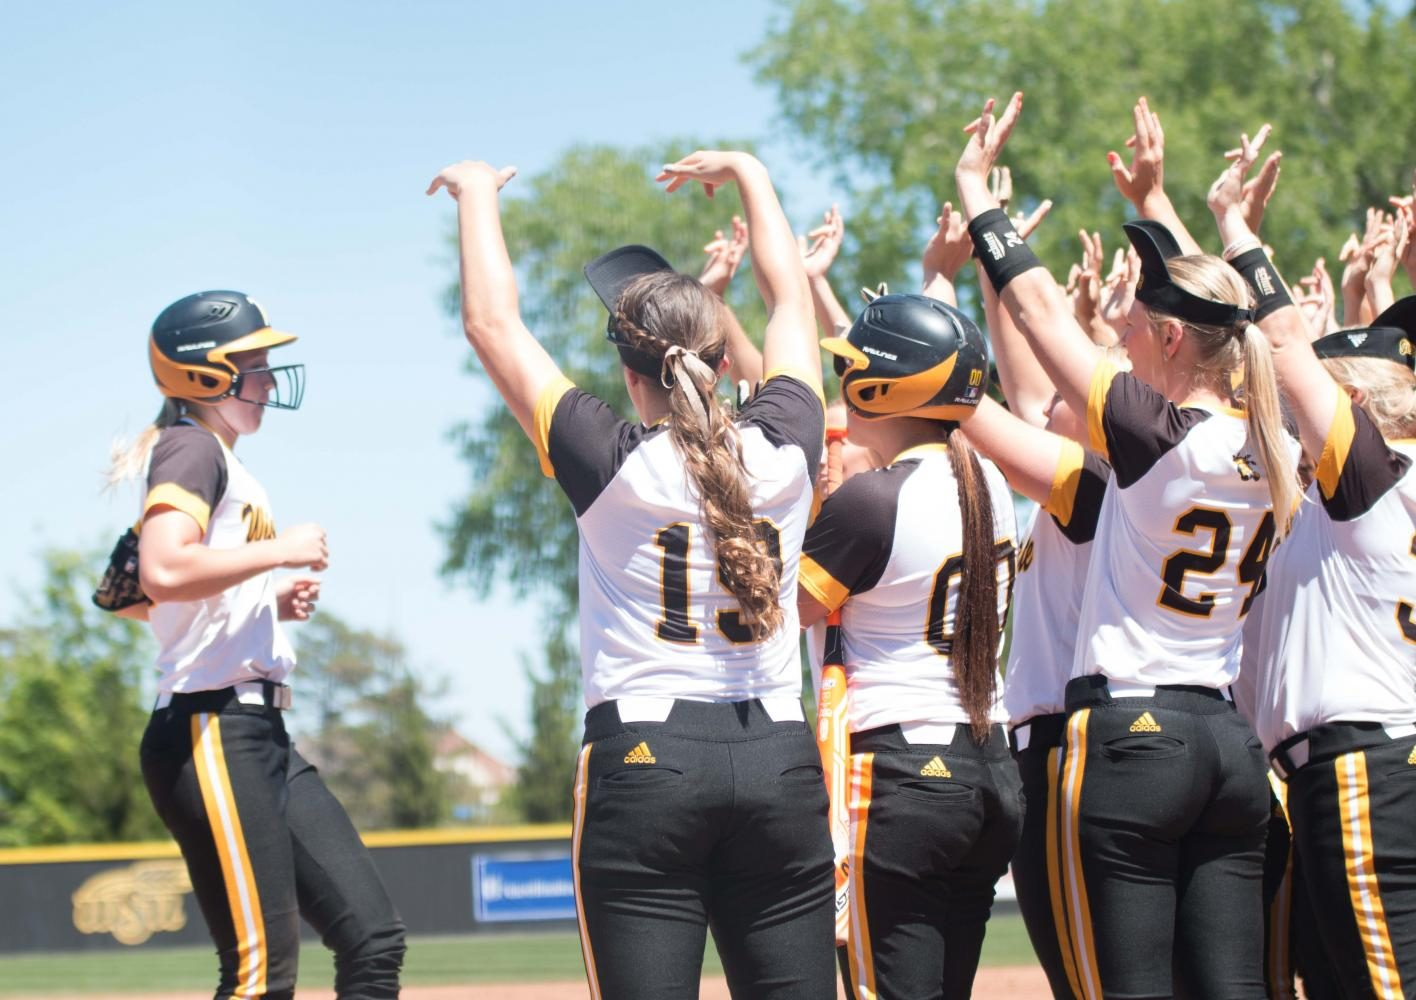 Members+of+the+Shocker+softball+team+greet+sophomore+Laurie+Derrico+after+a+home+run+against+Evansville.+